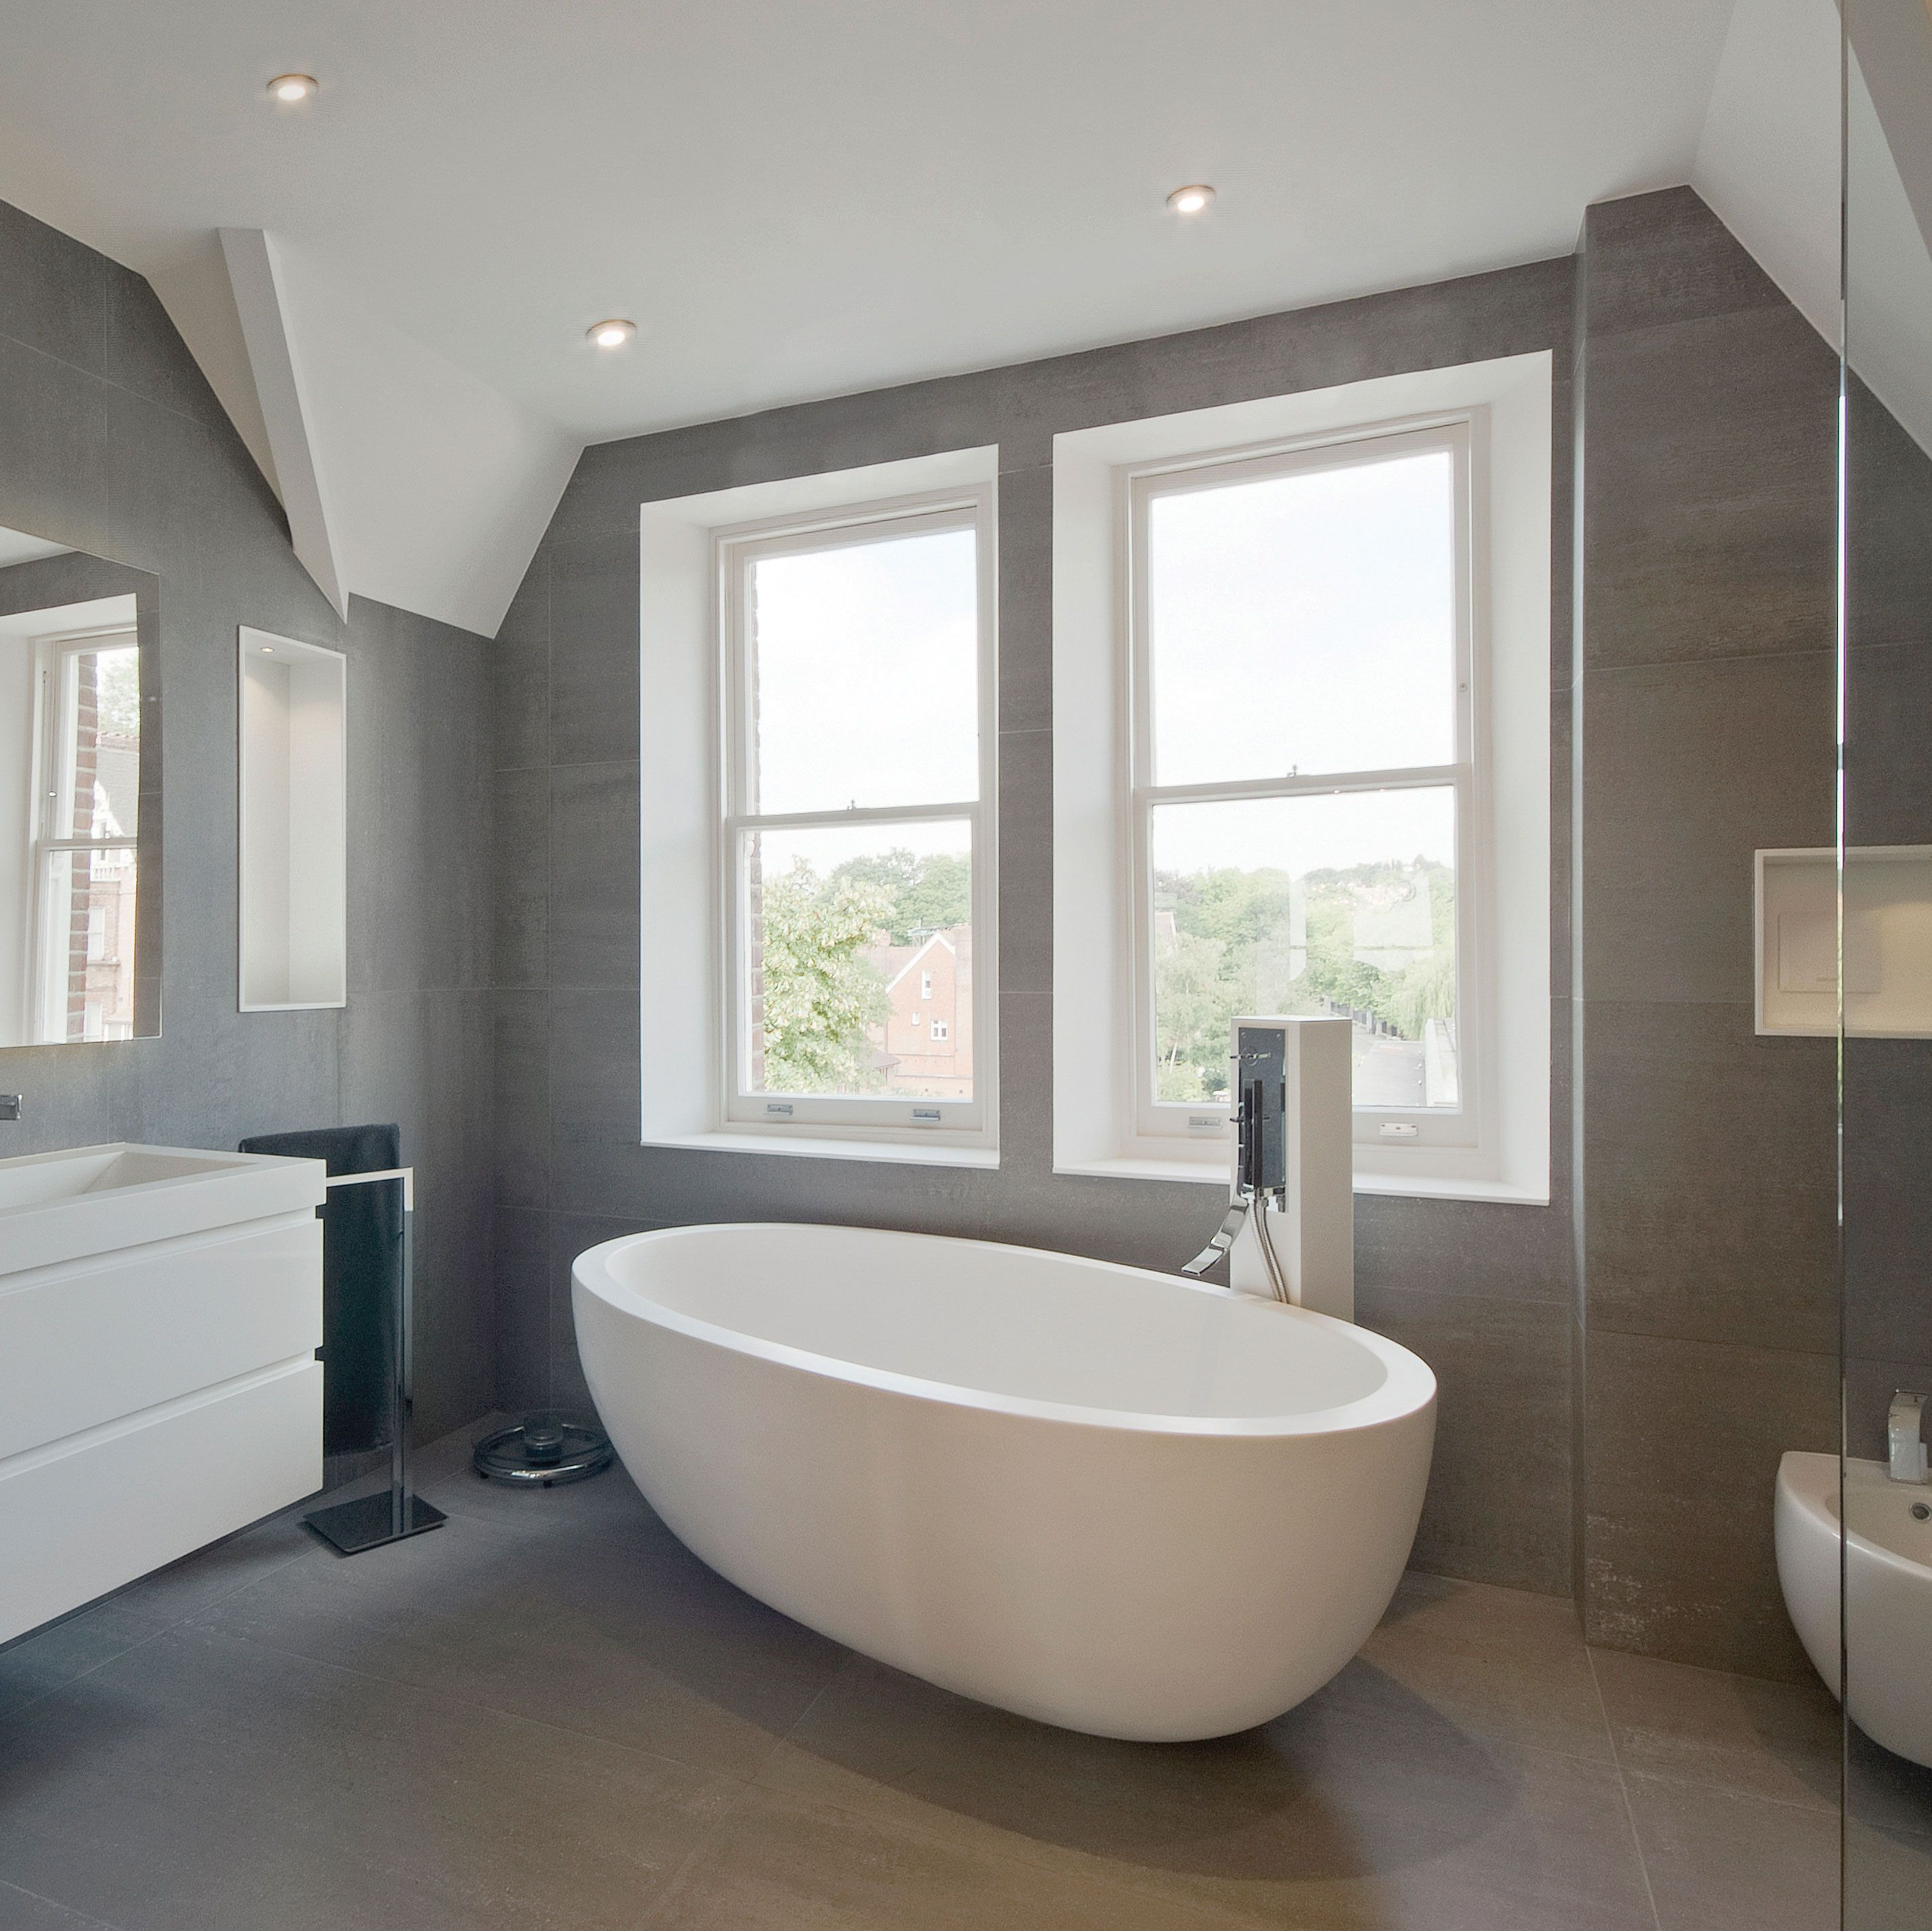 Superb A Modern And Chic Residential Bathroom Project. Featuring Wall To Floor  Speckled Grey Tiles From